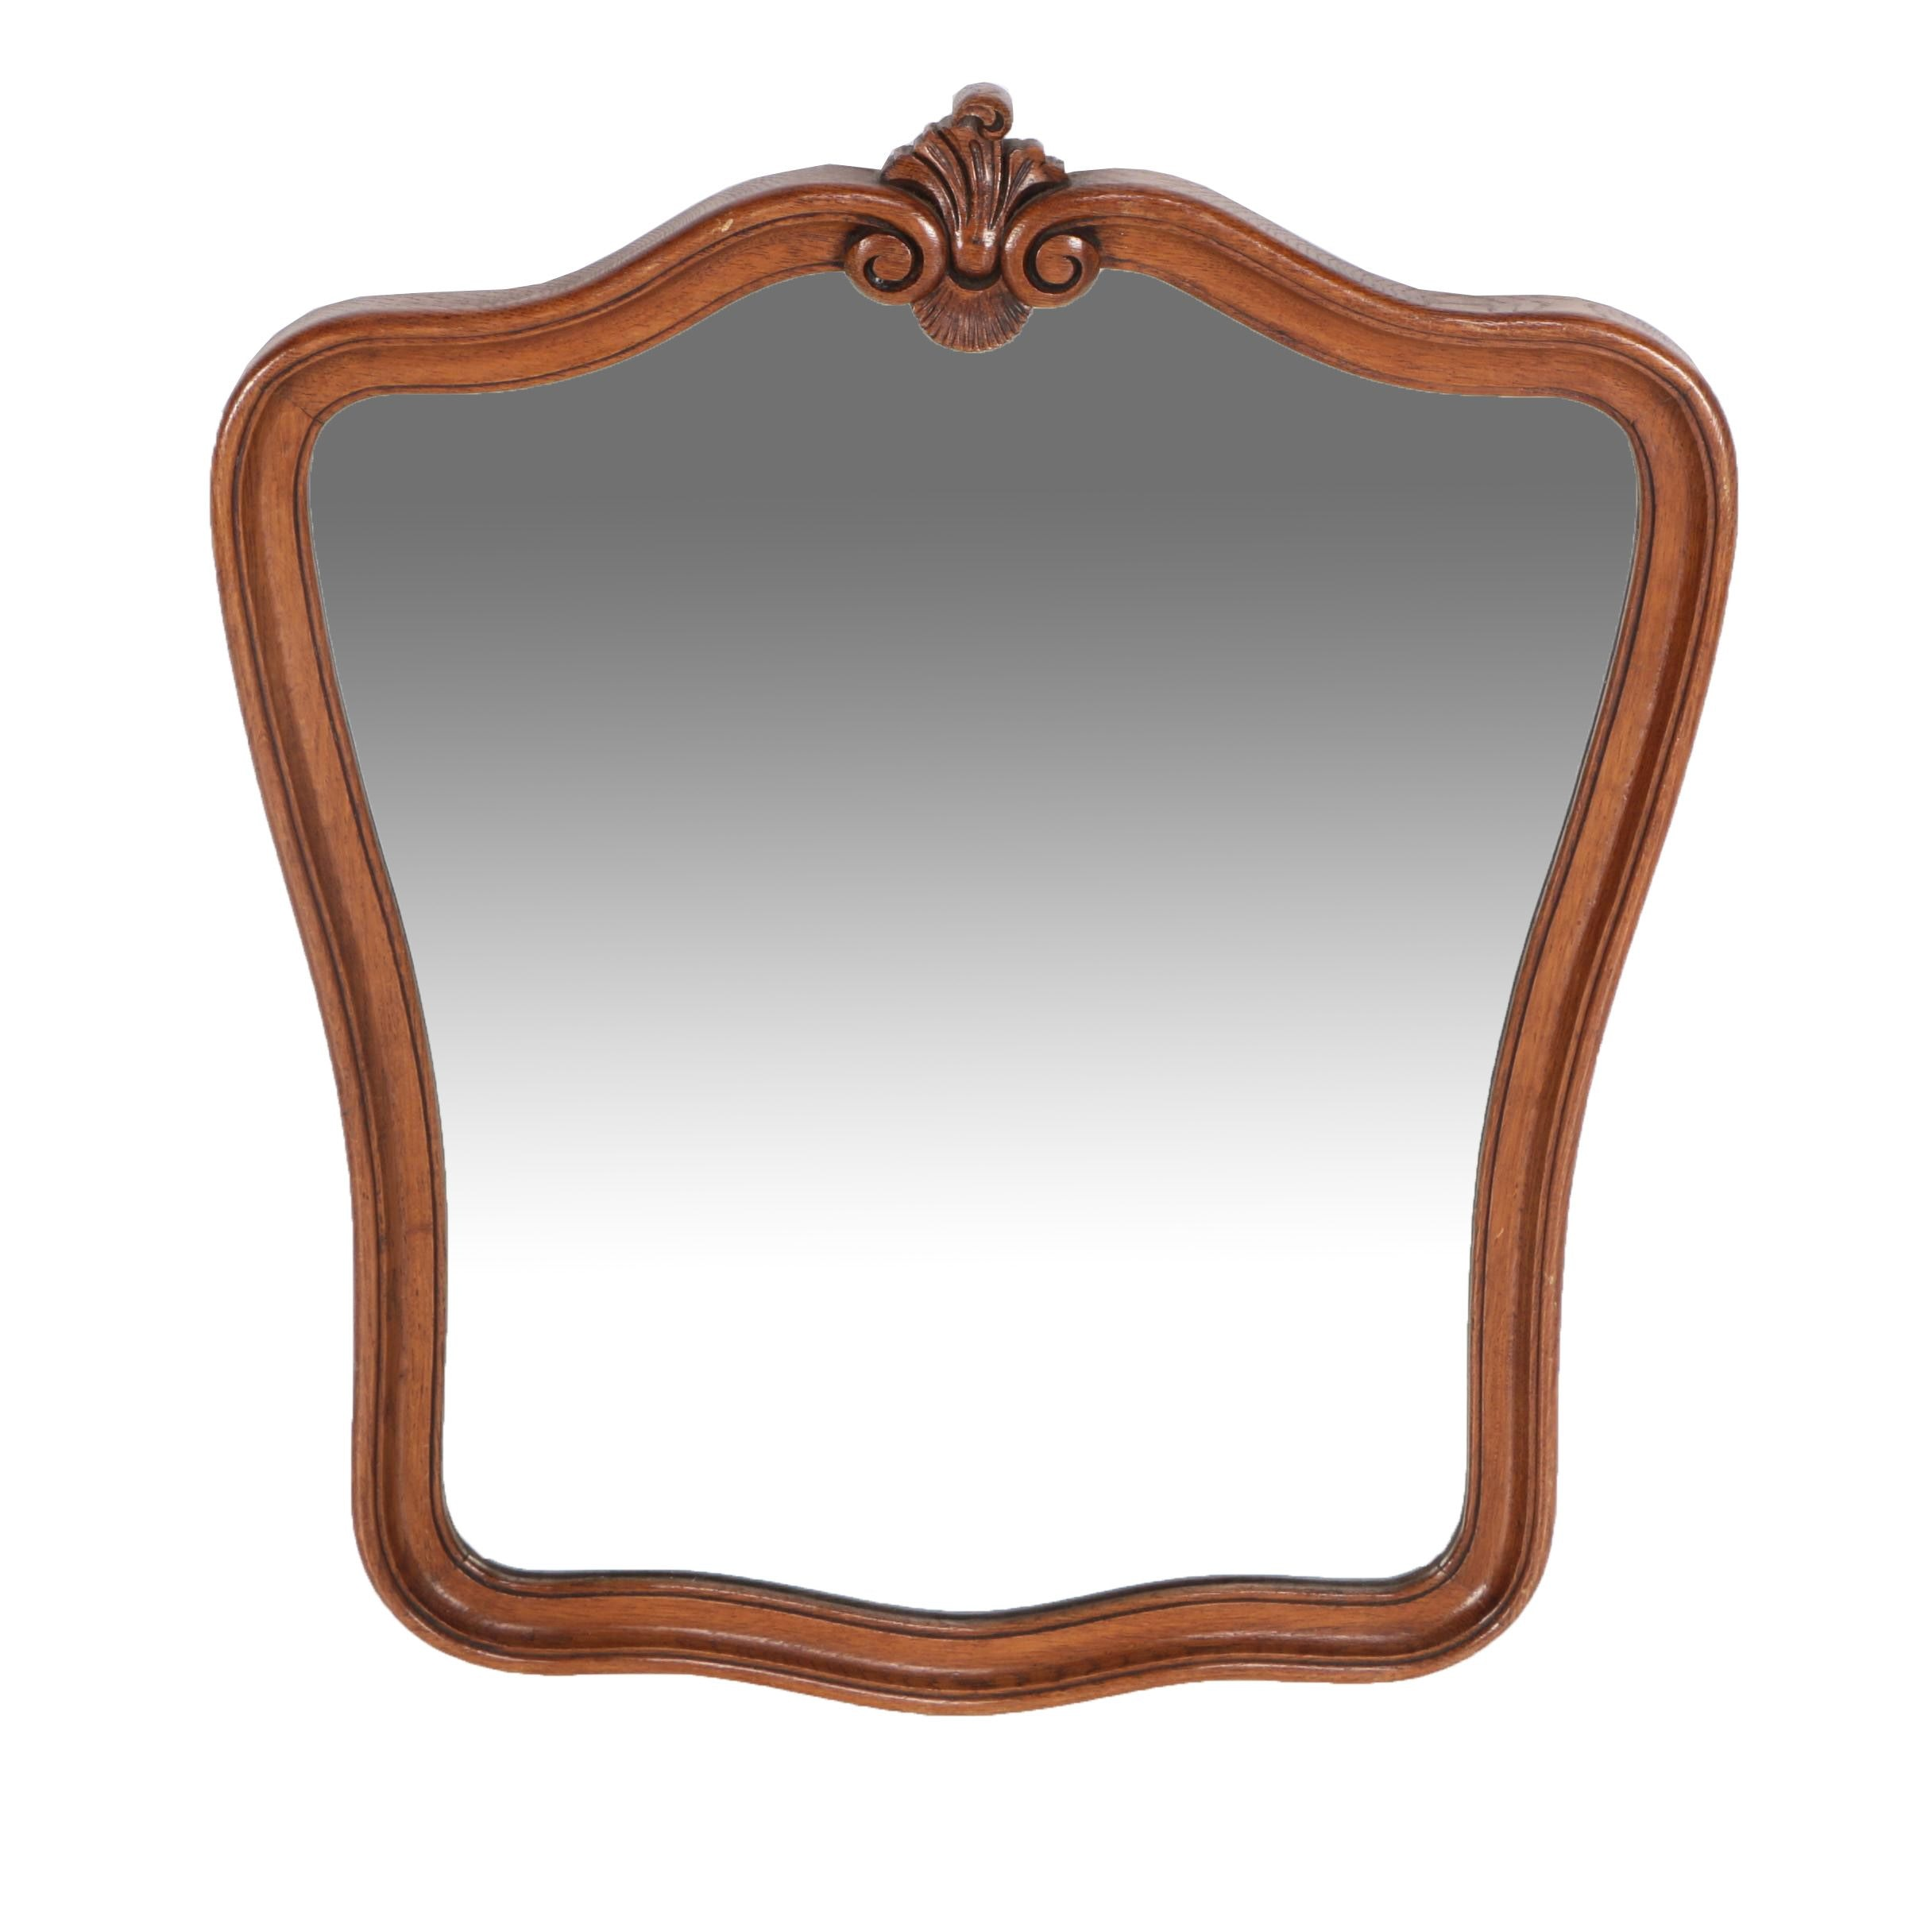 Beveled Glass Wall Mirror with Carved Wood Frame